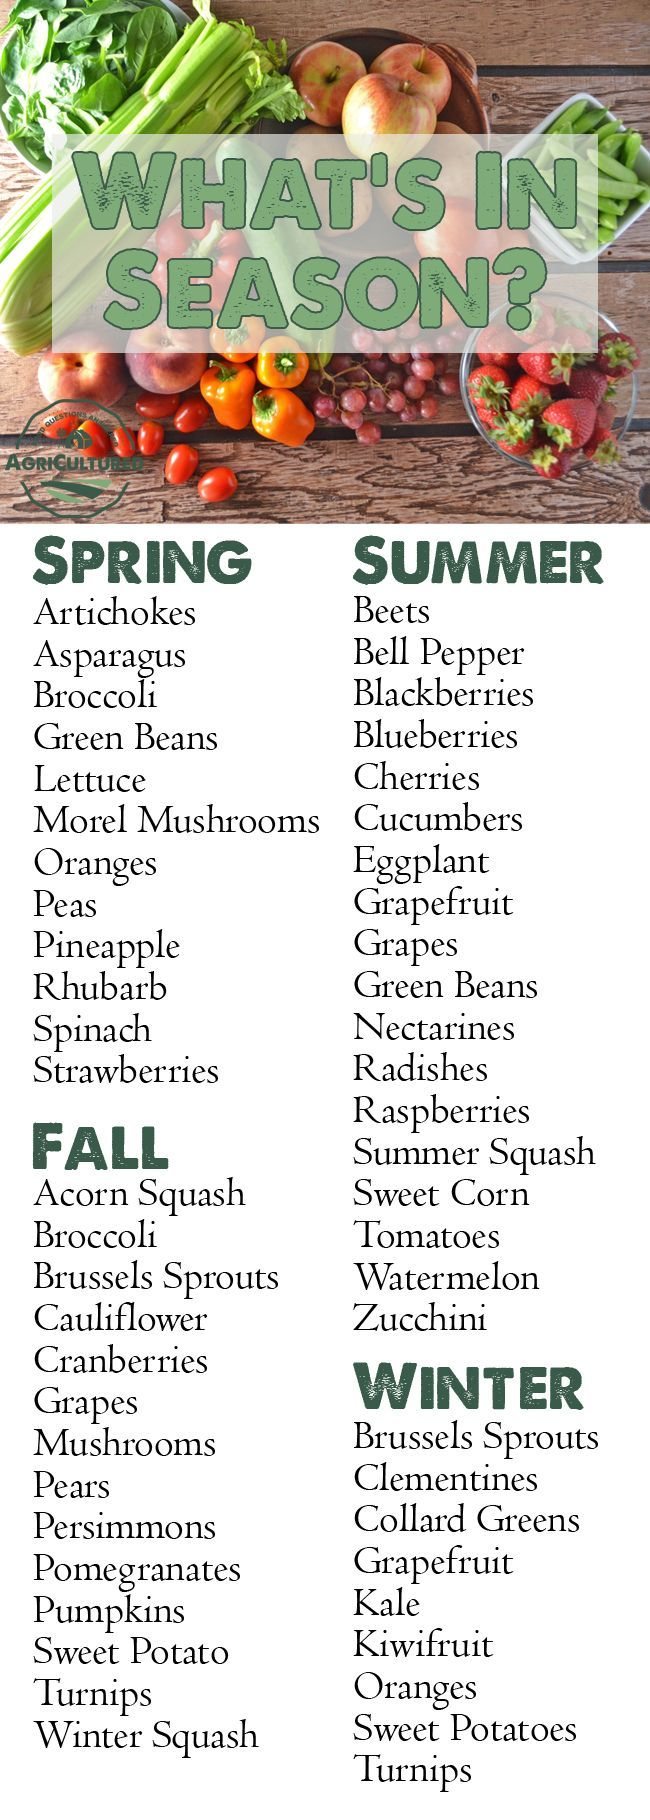 Fresh Produce is in Season? from AgriCultured. Shopping for produce when it's in season means you can find the freshest fruits and vegetables, often at a lower cost. Get the list of what's in season!